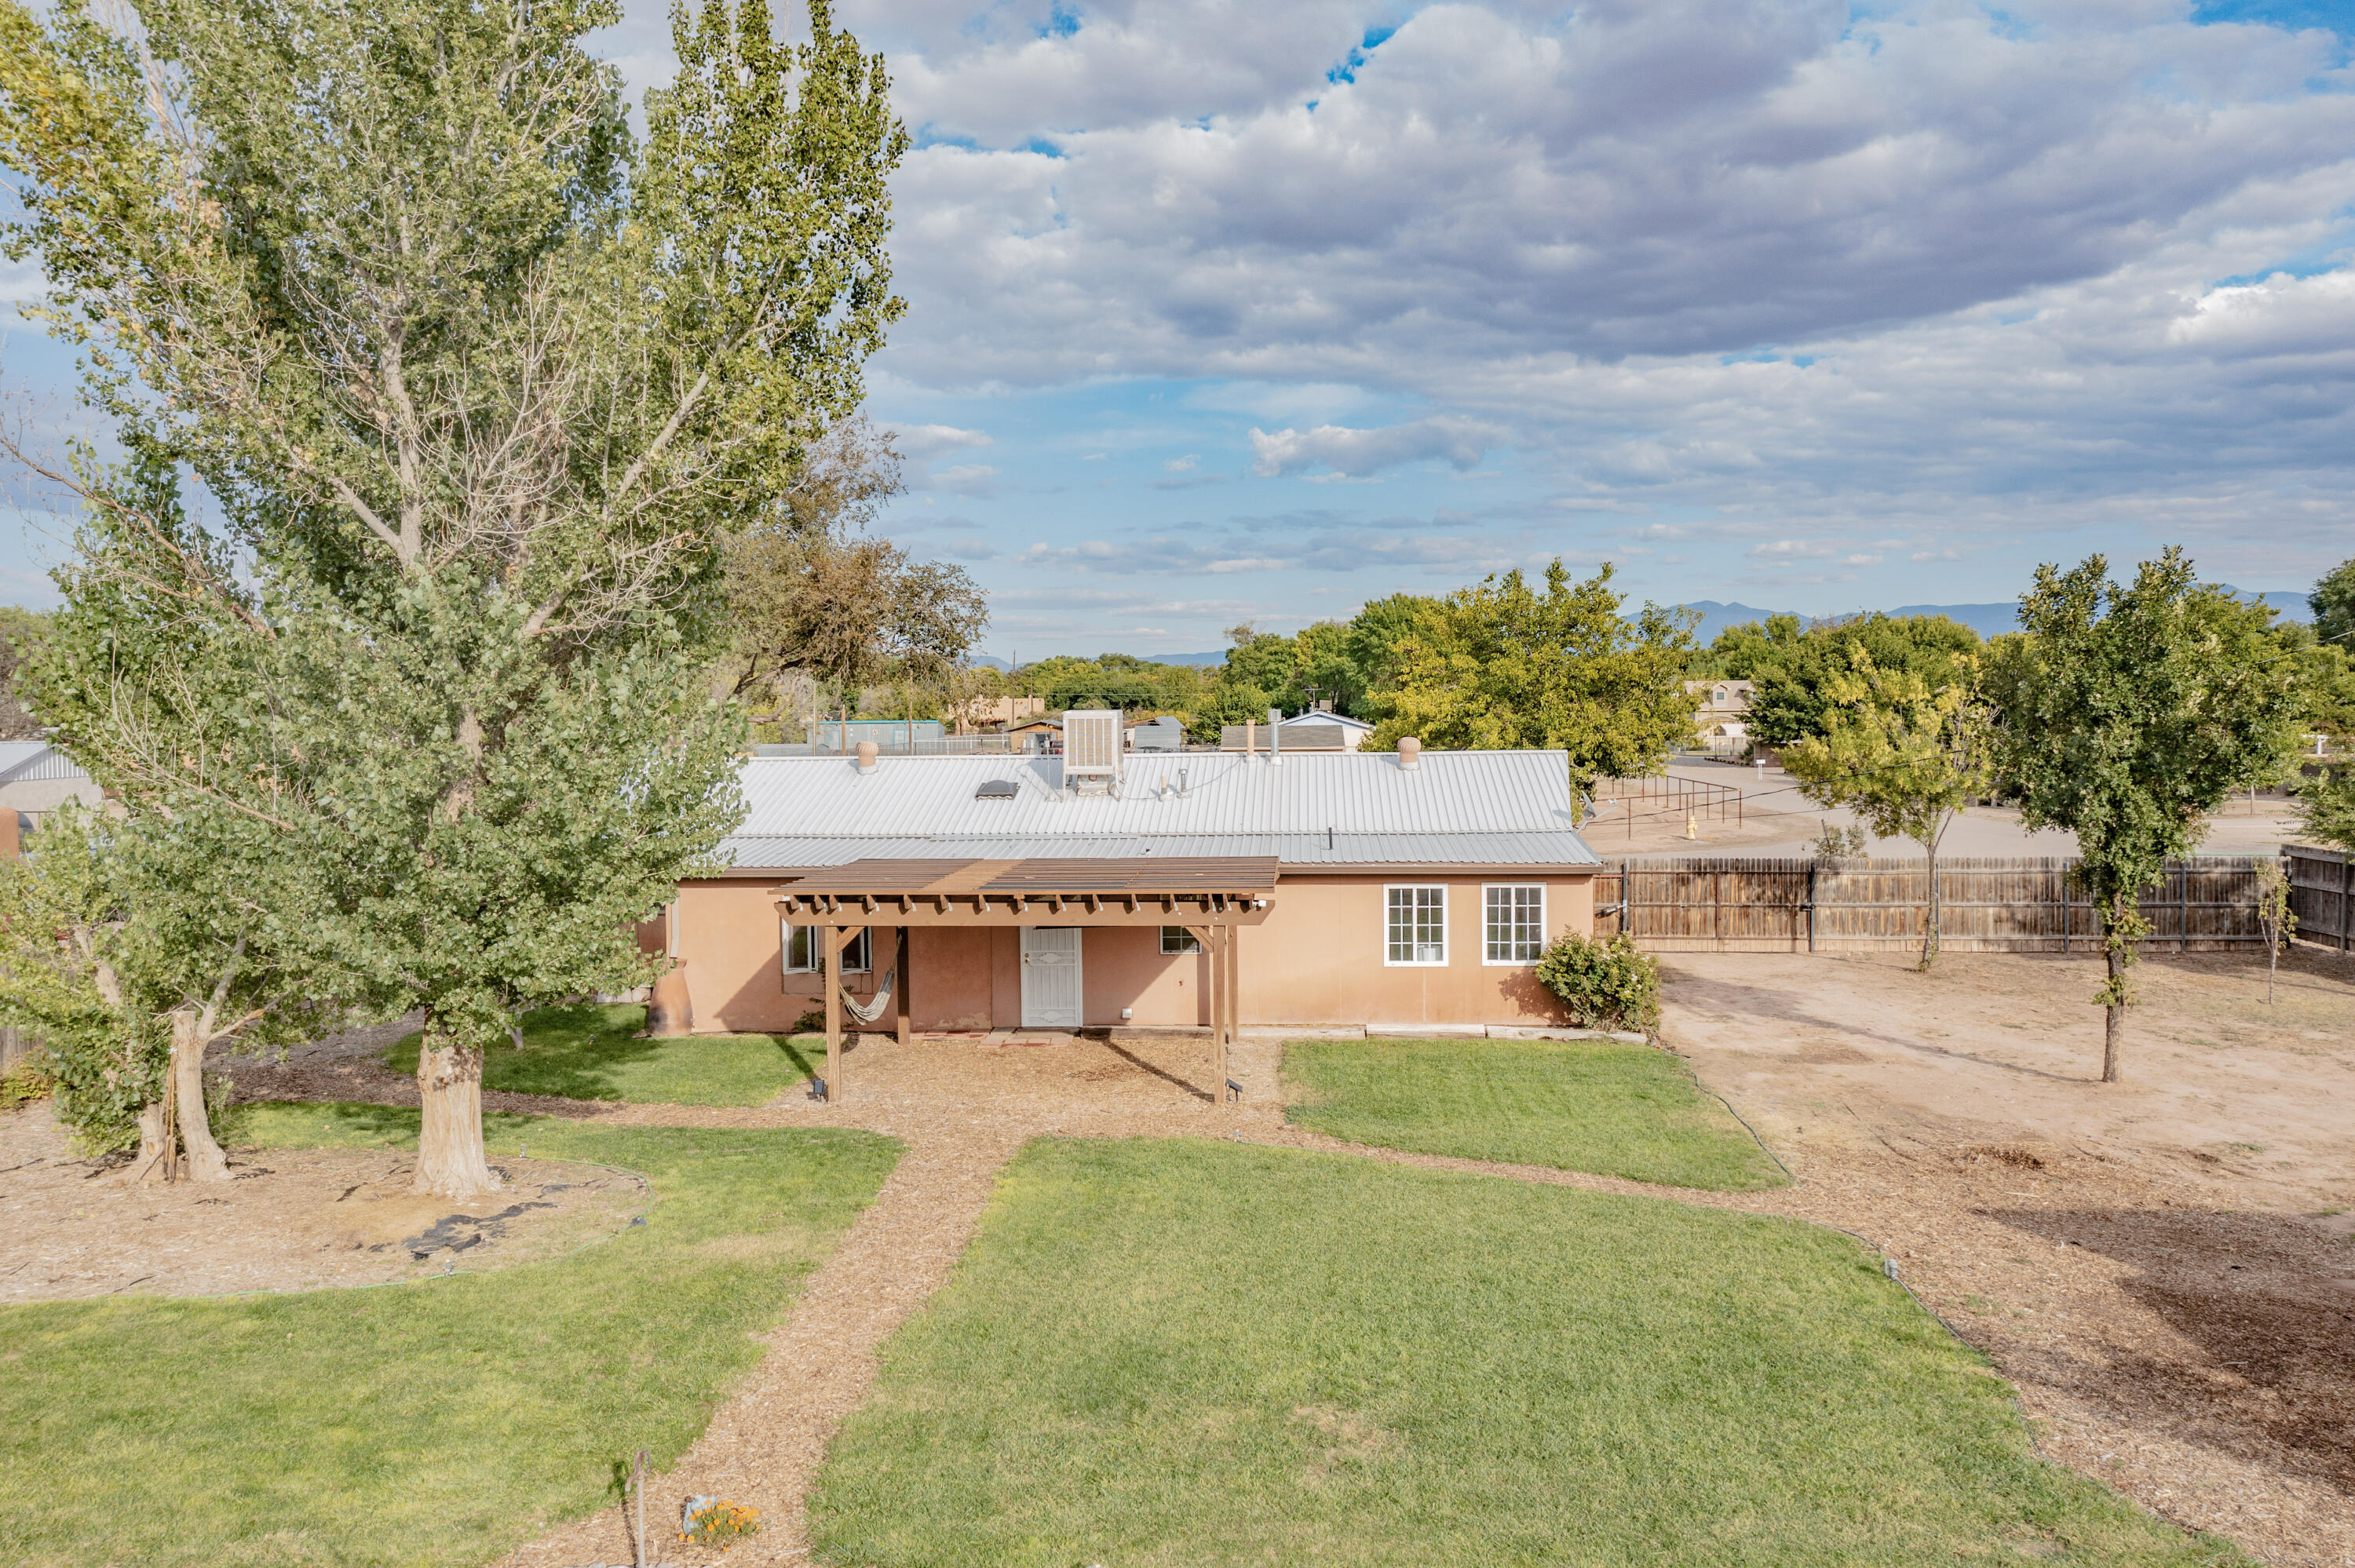 Come see this beautiful country home in Bosque Farms. 1848 SqFt, 3 bedrooms, 1.75 baths on .51 acres. It is bright and airy and has 2 living areas, an office with built-in shelves, dining and laundry rooms with tile and carpet throughout. The open central kitchen has a stamped tin backsplash and plenty of cabinets. The spacious main bedroom has a lot of natural light and looks out to the large private backyard. There is a 600 SqFt workshop/1 car garage with vaulted ceilings and room for all your toys! The fenced yard has backyard access, an irrigation well, lawn sprinklers, raised garden beds, grapes, berries and fruit trees. Relax under the shaded pergola! City utilities and no HOA. This house is close to conveniences, shopping and dining and is ready to be your home sweet home!